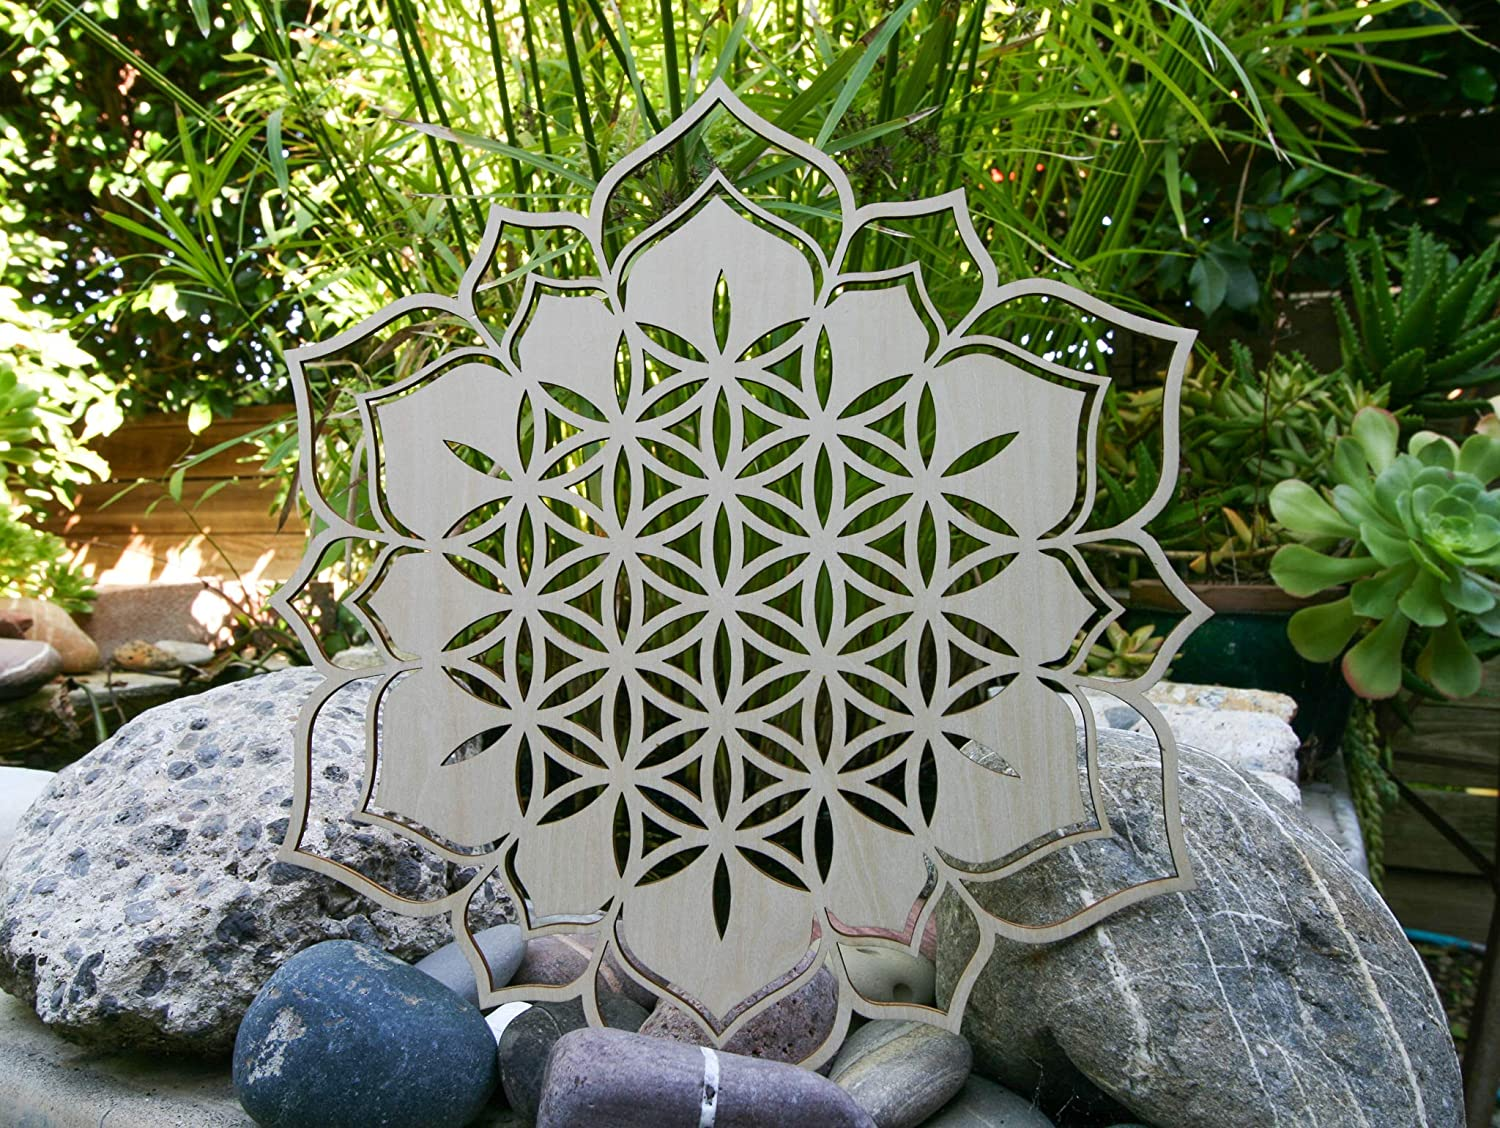 "Flower of Life Lotus 12"", Seed of Life, Home Decor, Wooden Wall Art, Sacred Geometry Art, Sculpture, Wall Decorations, Chakra Banner, Crystal Grid"